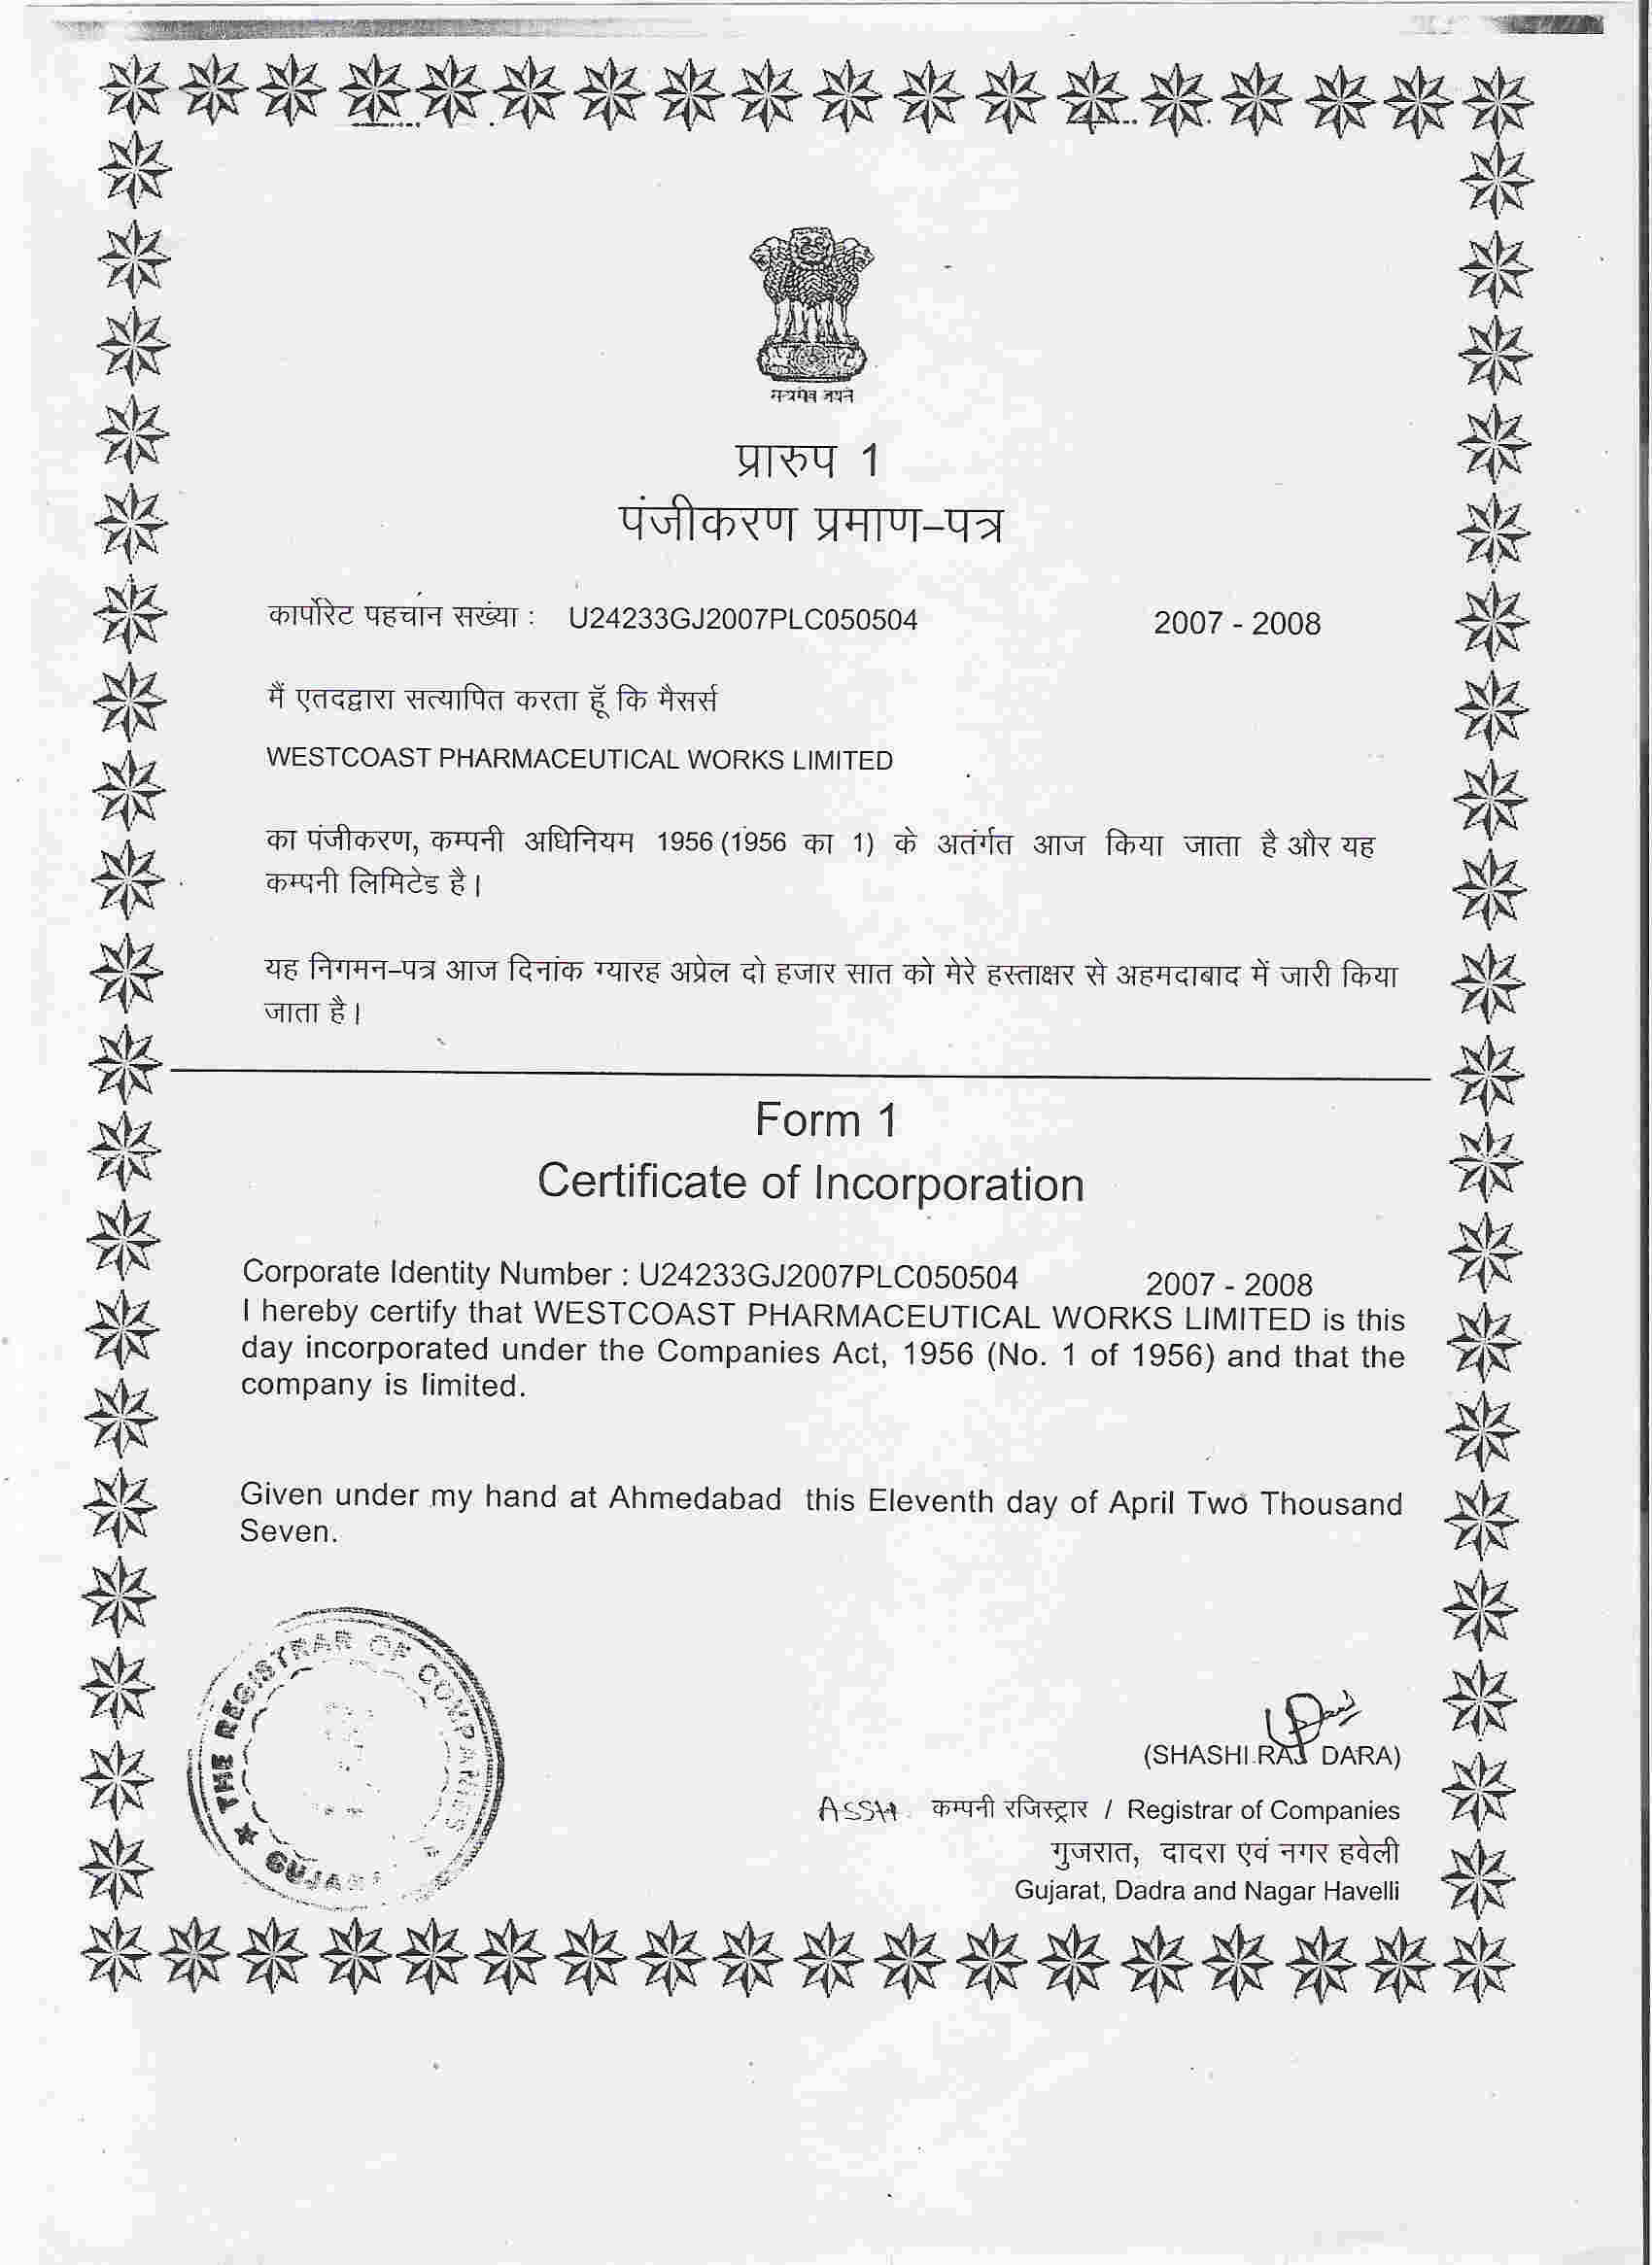 how to get certificate of incorporation india